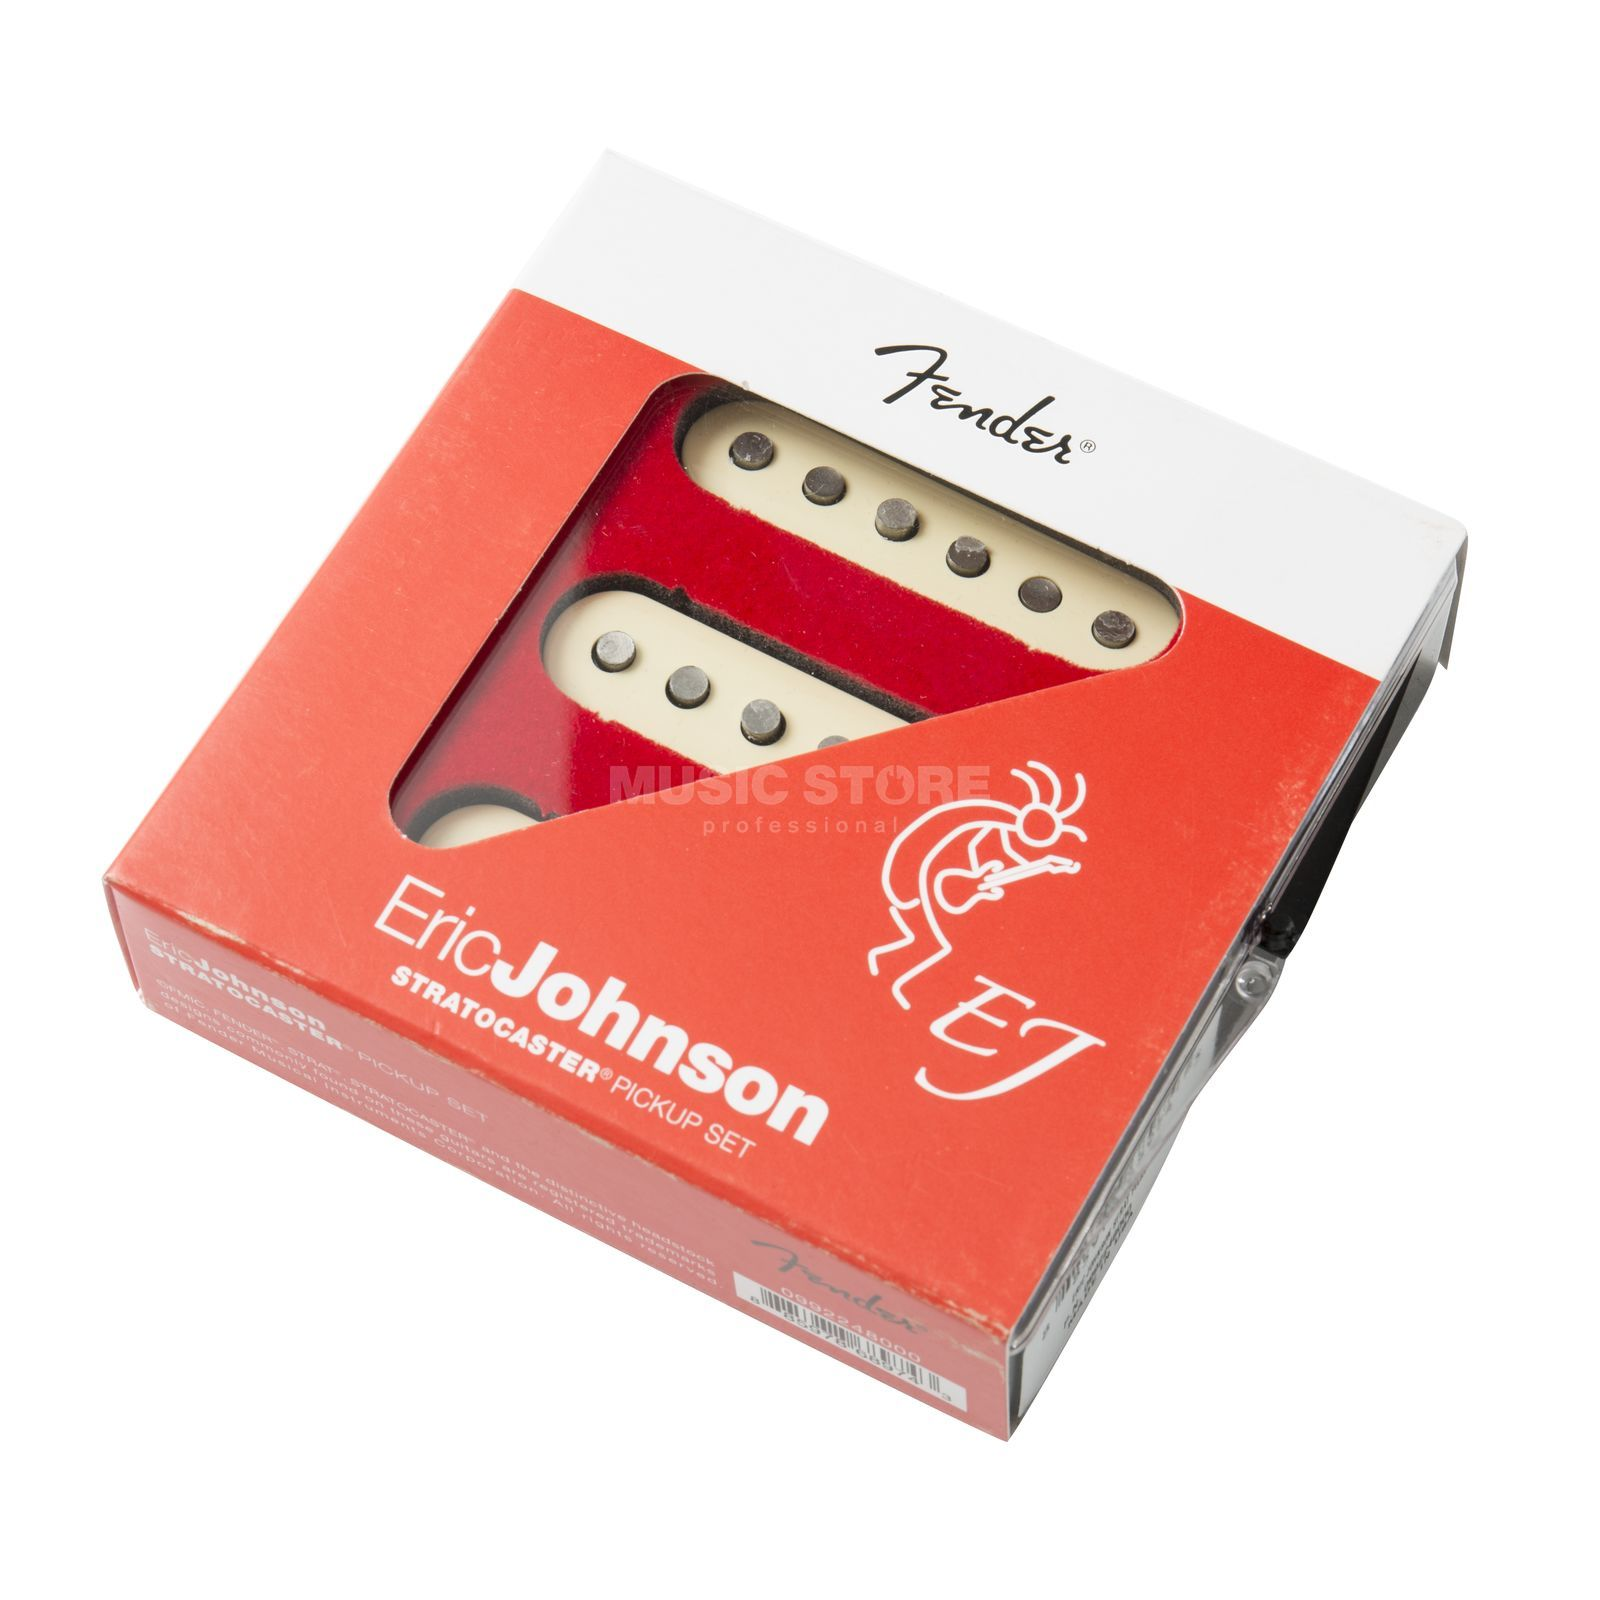 Fender Eric Johnson Pickup Set Image du produit